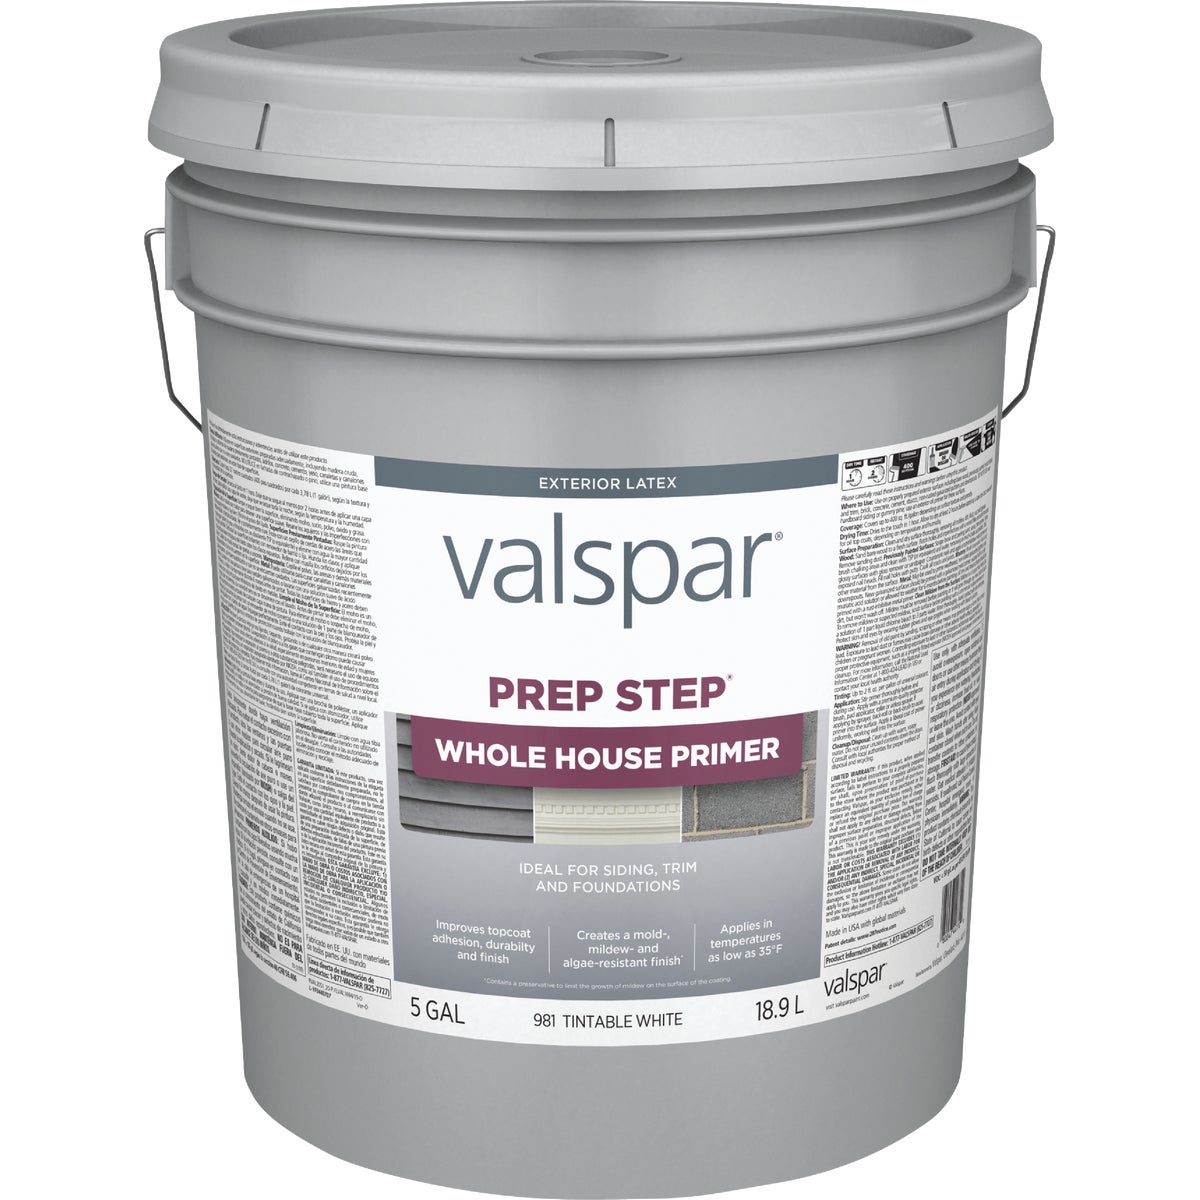 EXT LATEX WOOD PRIMER - 044.0000981.008 by Valspar Corp